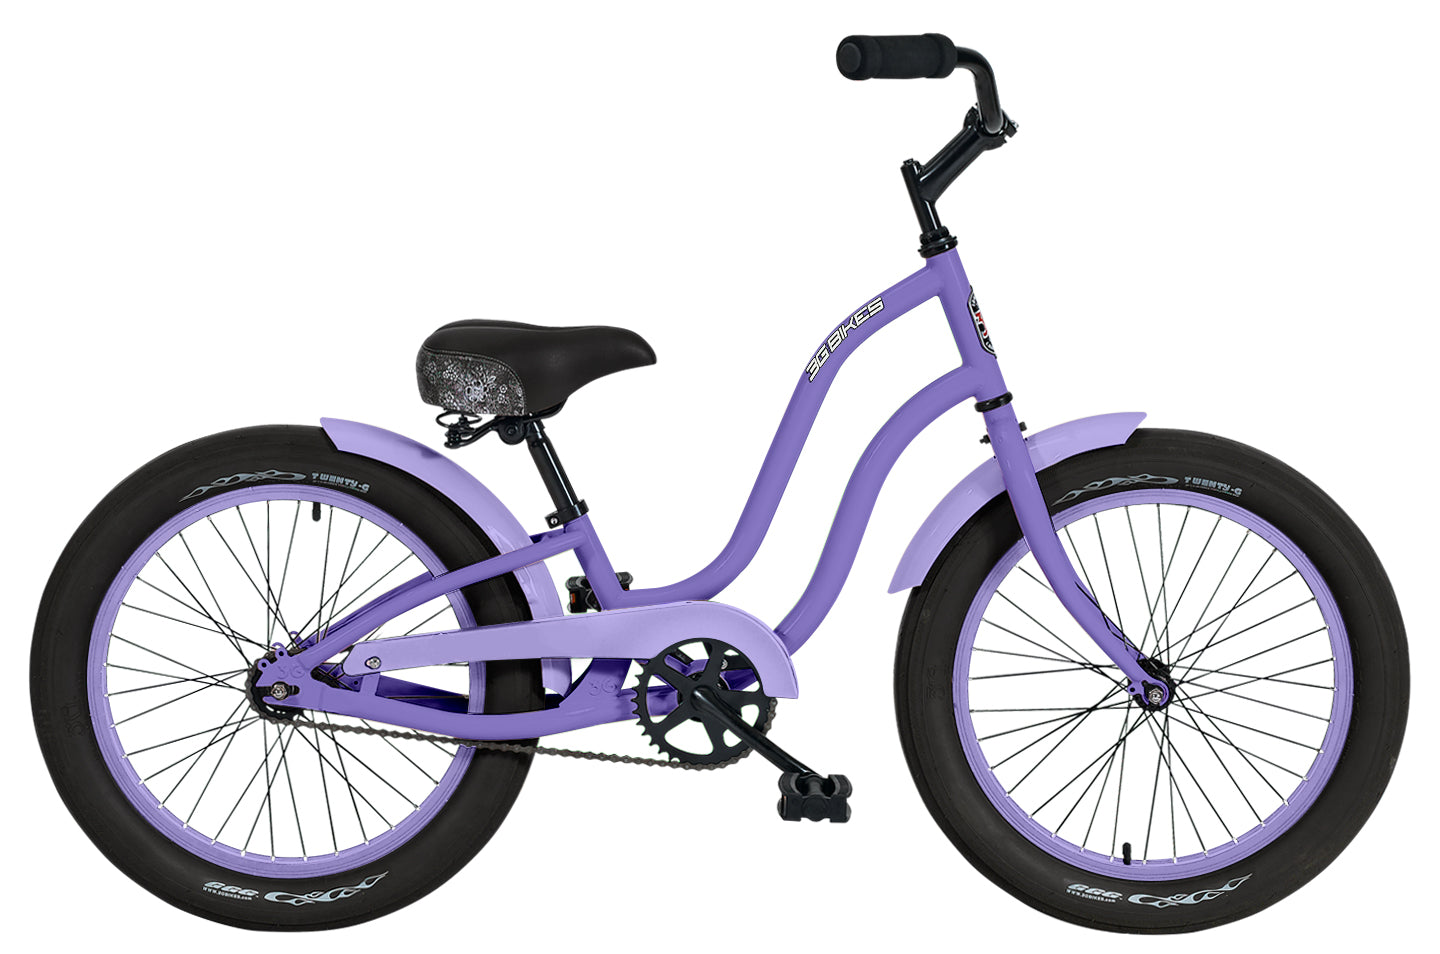 "3G Gigi 1 Speed Girls 20"" Deluxe Bike - Soft Pink with Purple Rims & Fender"